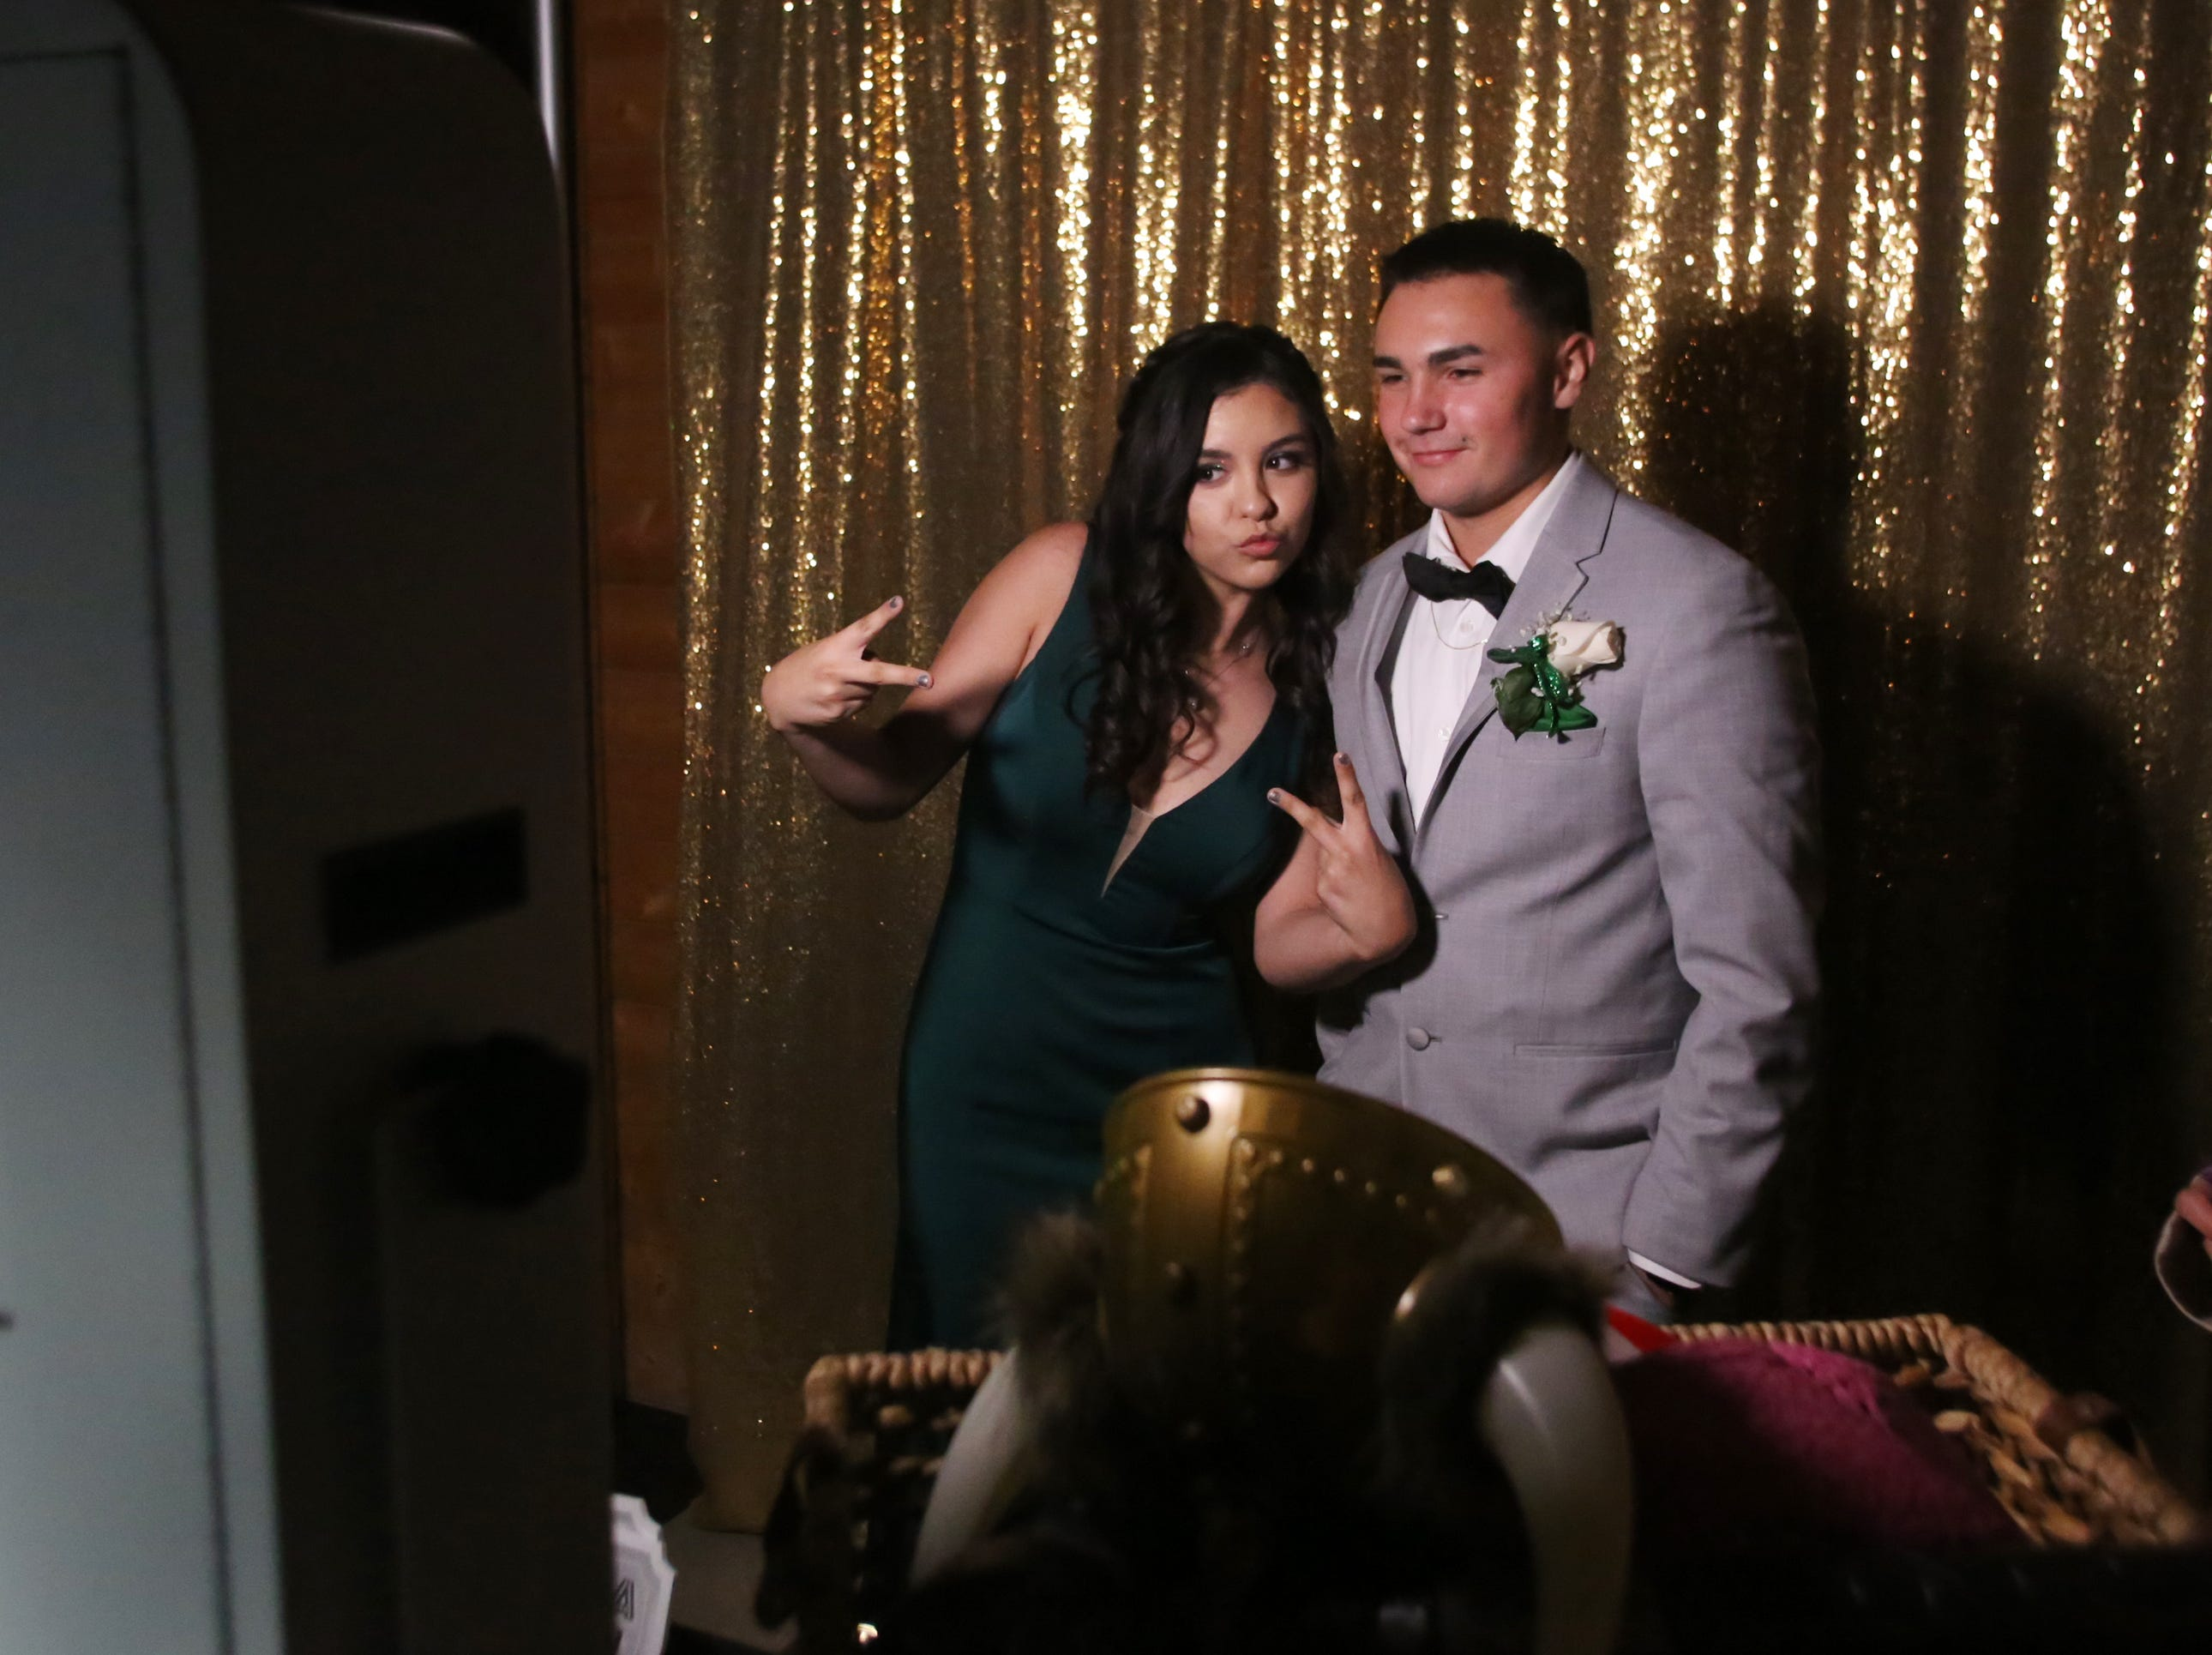 Cheyenne Lynch and Josh Perez share a moment in the C&N photo booth at the Exeter Union High School prom Saturday, May 4, 2019 in Woodlake, Calif.